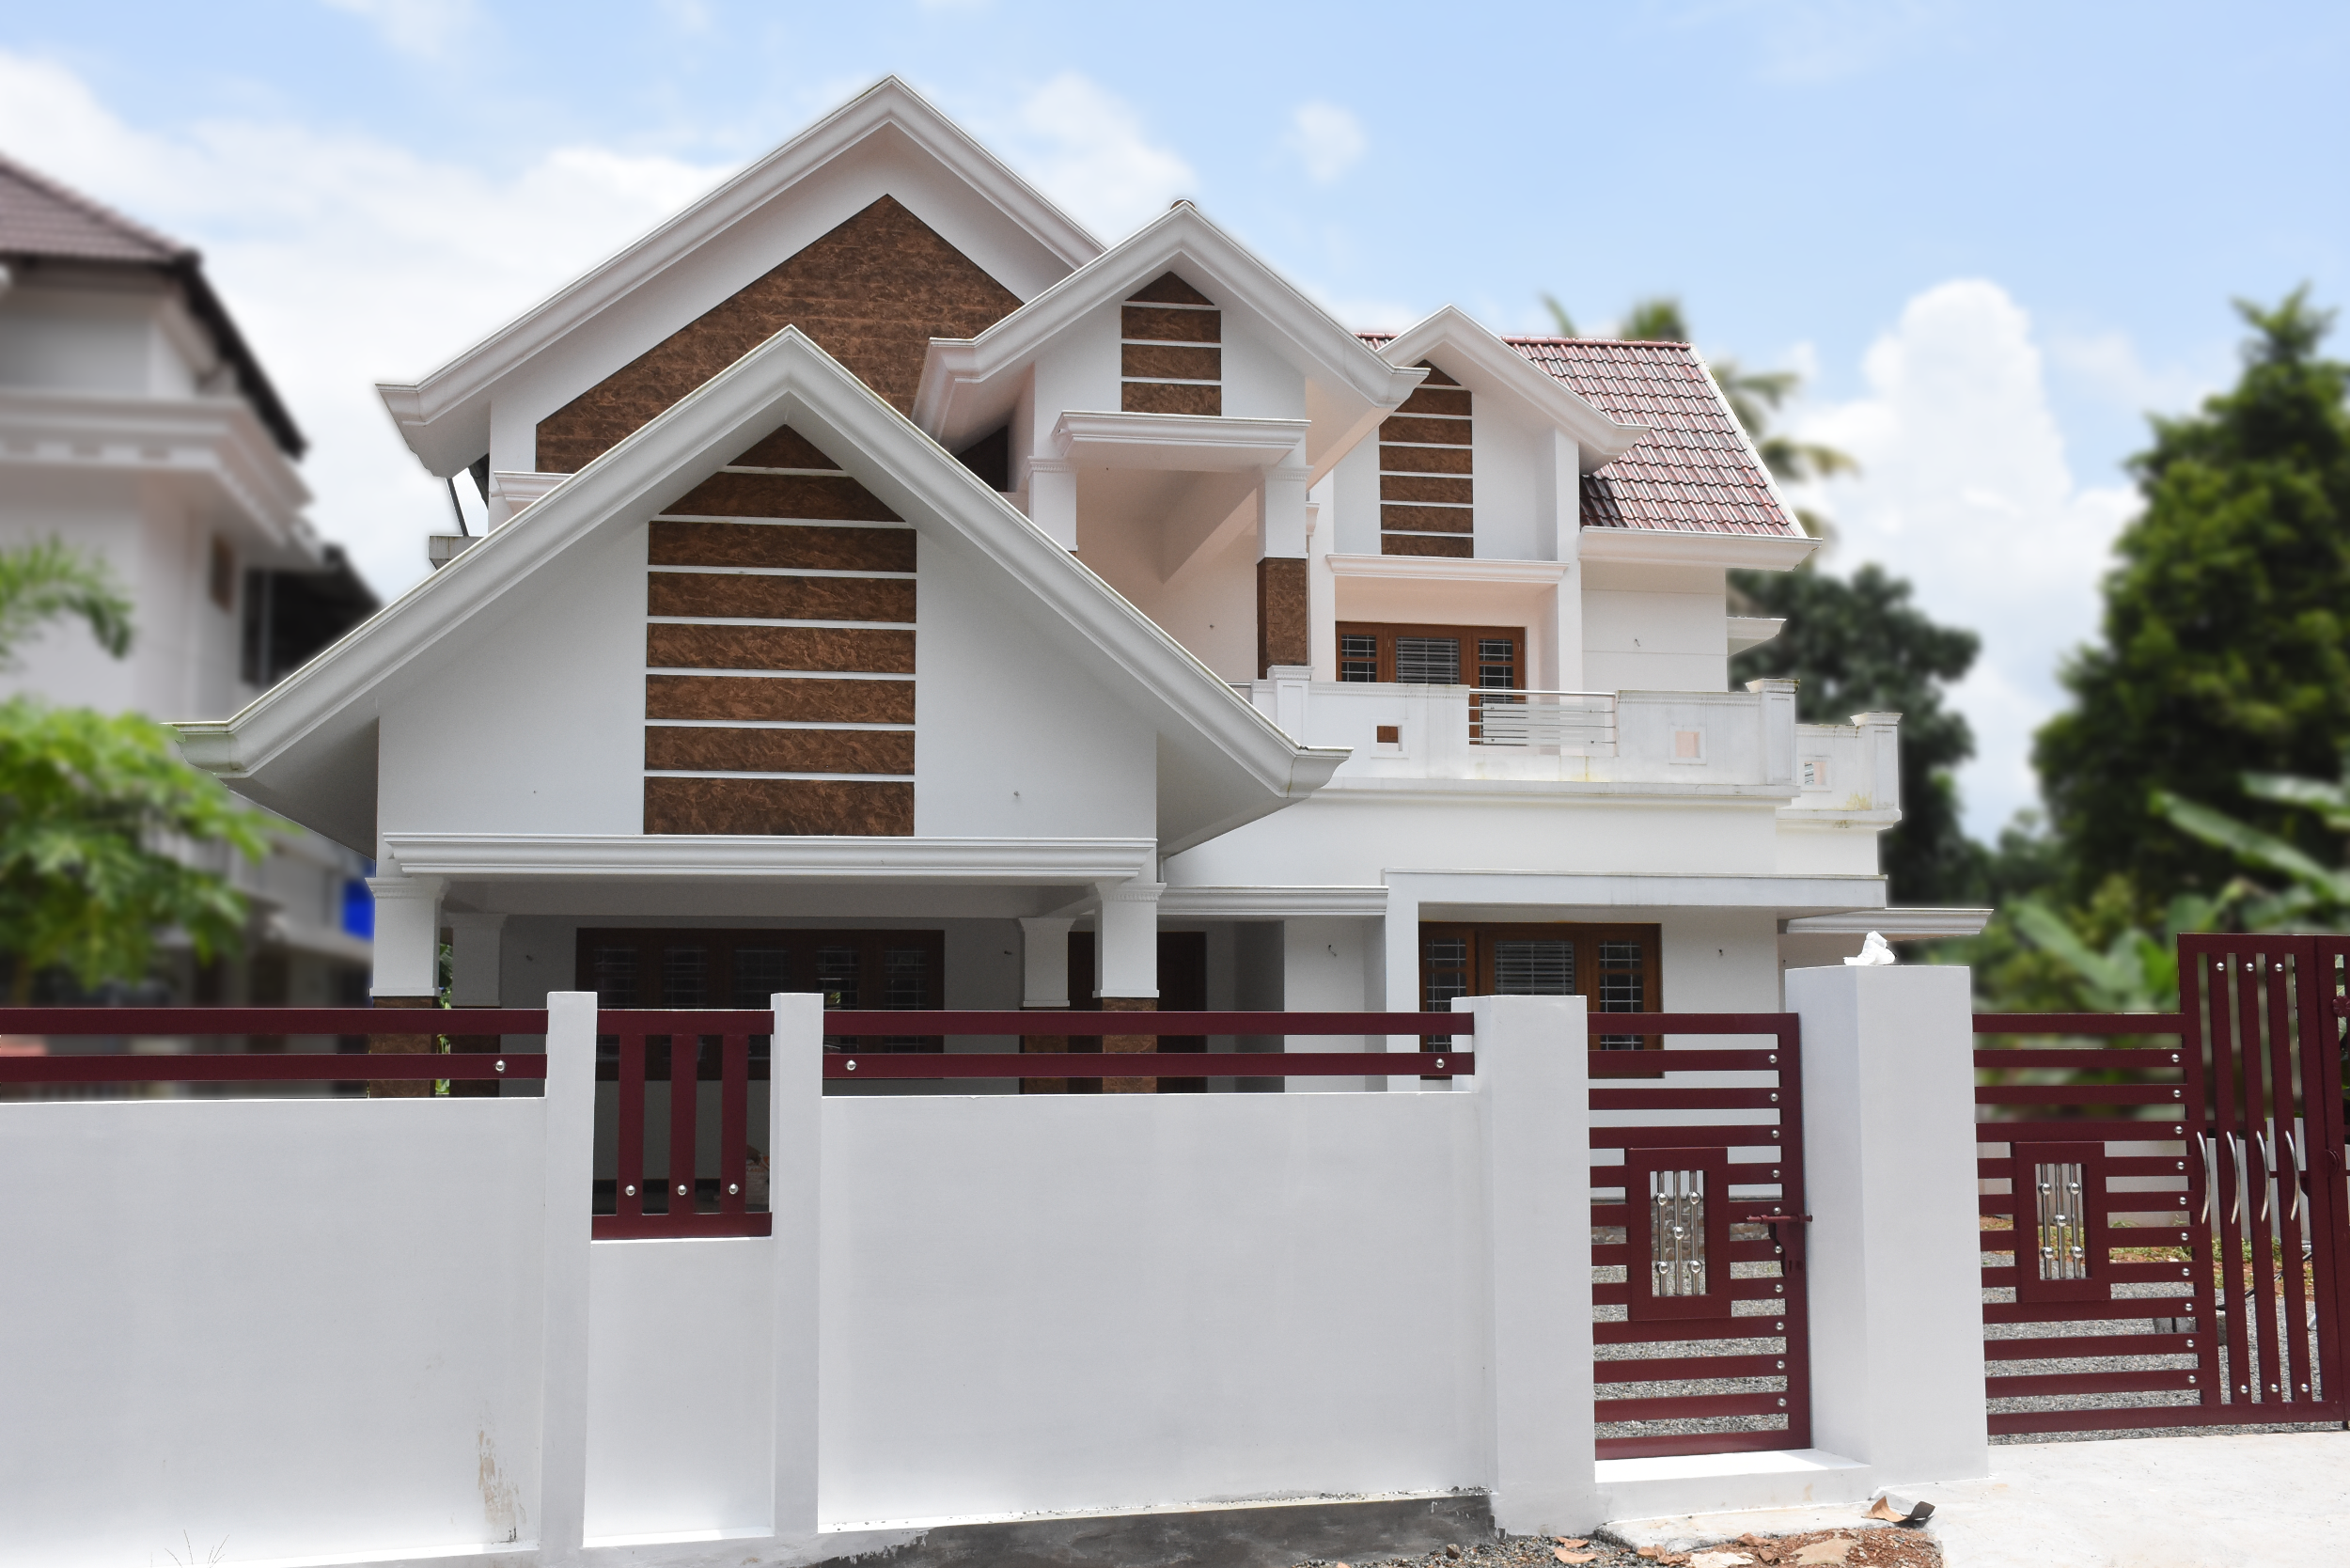 House Designs Beautiful House Models House Architectures House Models Villa Designs Villa Architecture Beautiful Modern Homes Home Roof Design Roof Design